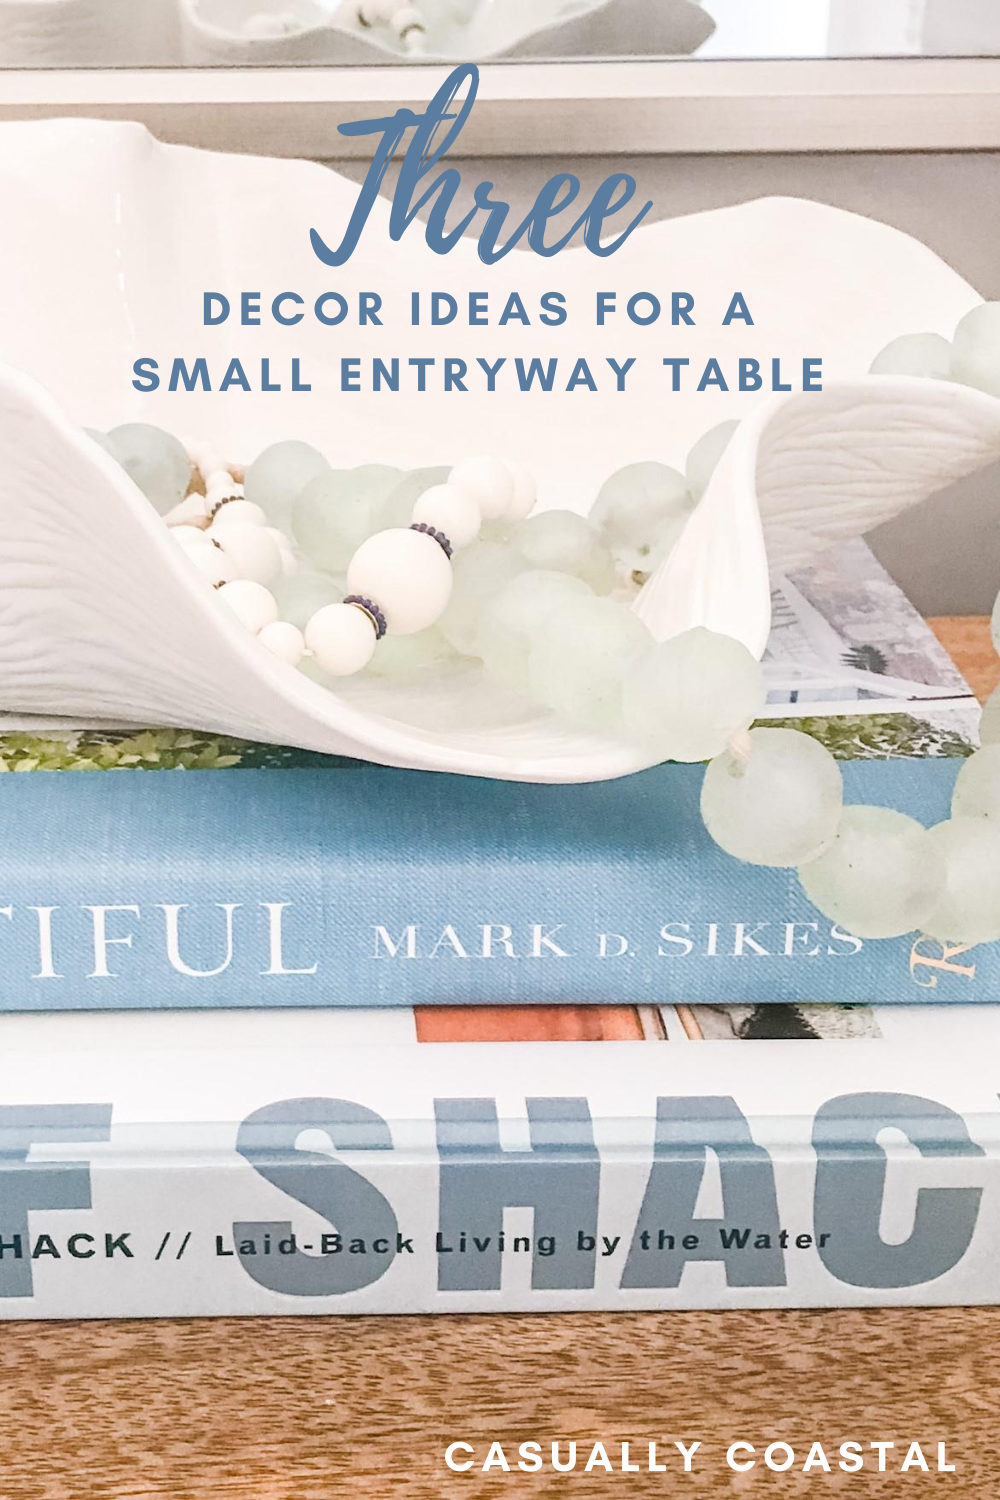 Three Decor Ideas for a Small Entryway Table